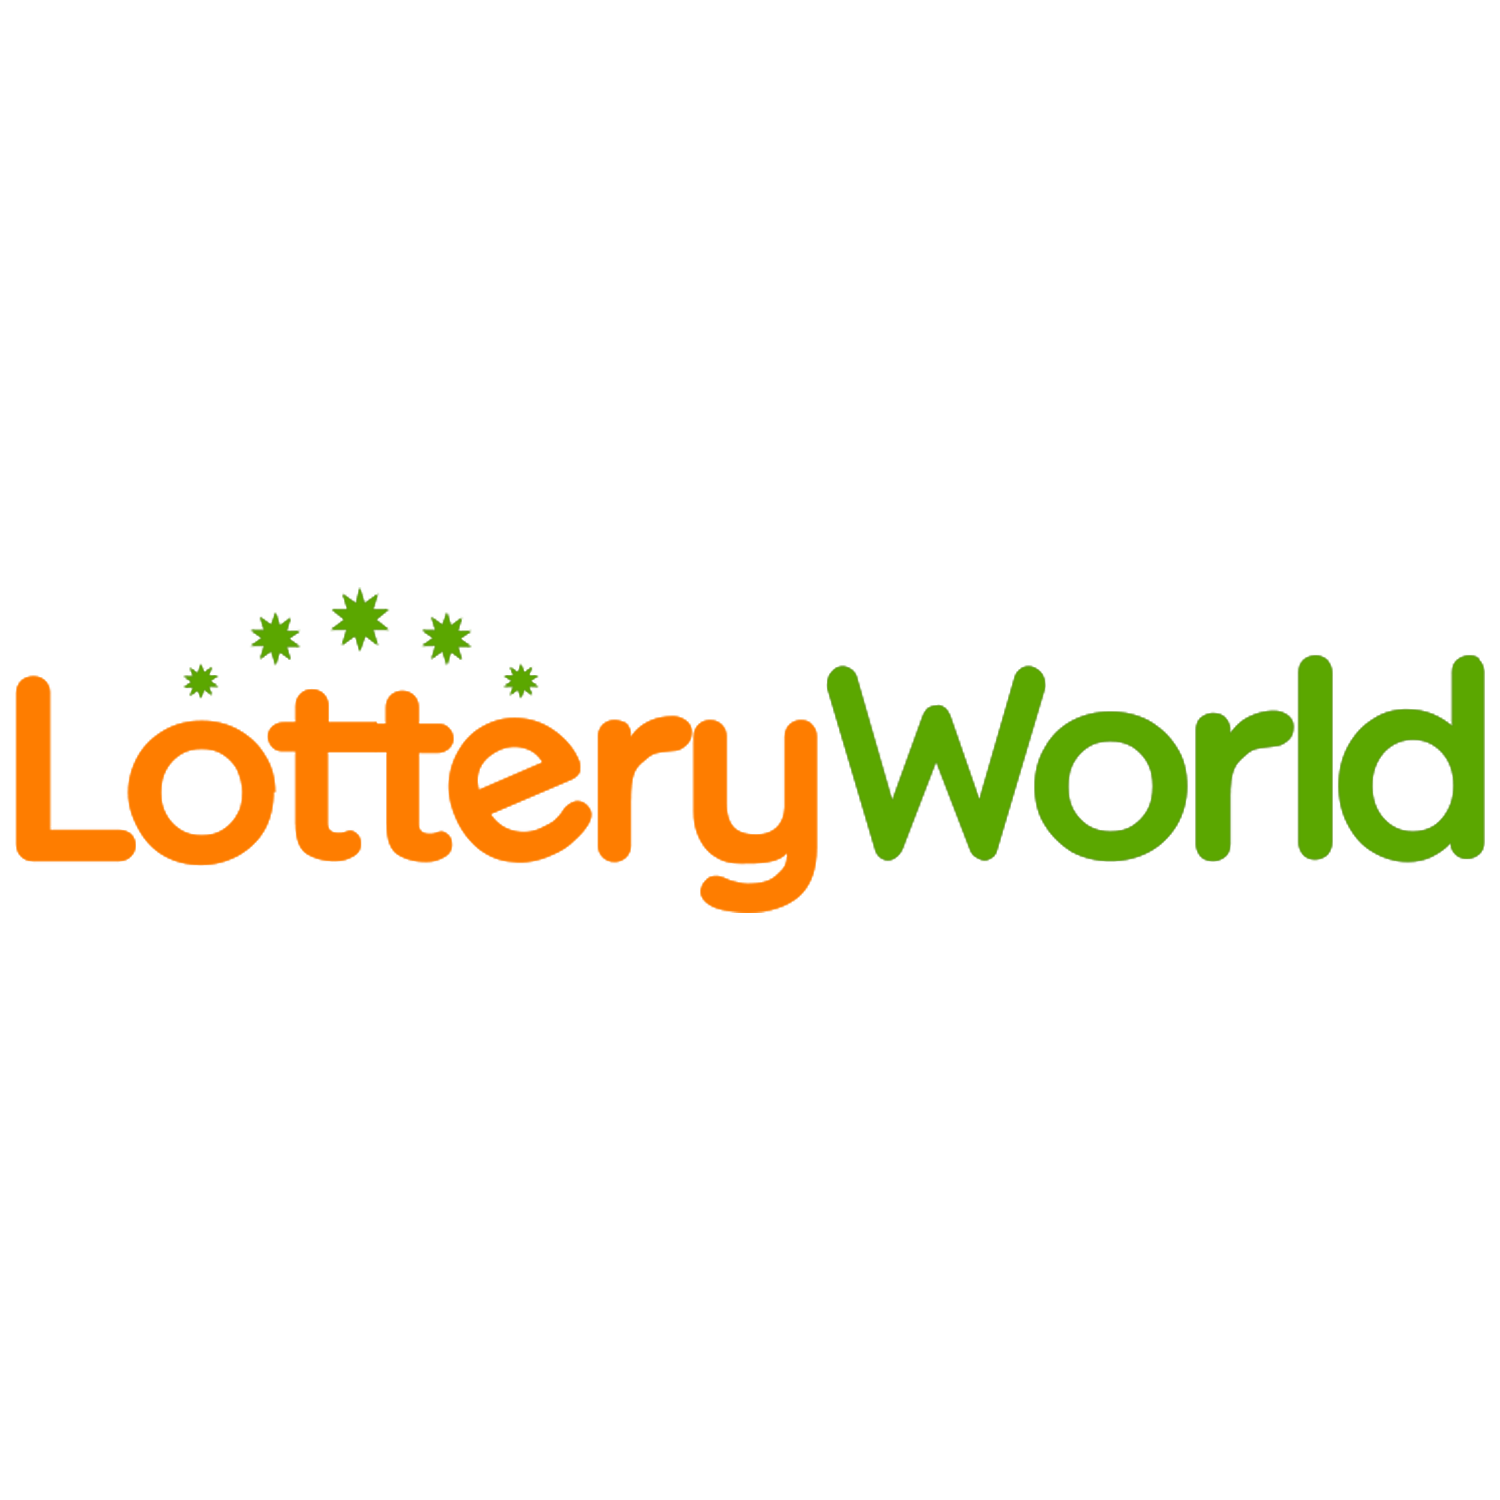 Learn how to buy lottery tickets and play games on Lottery World India.